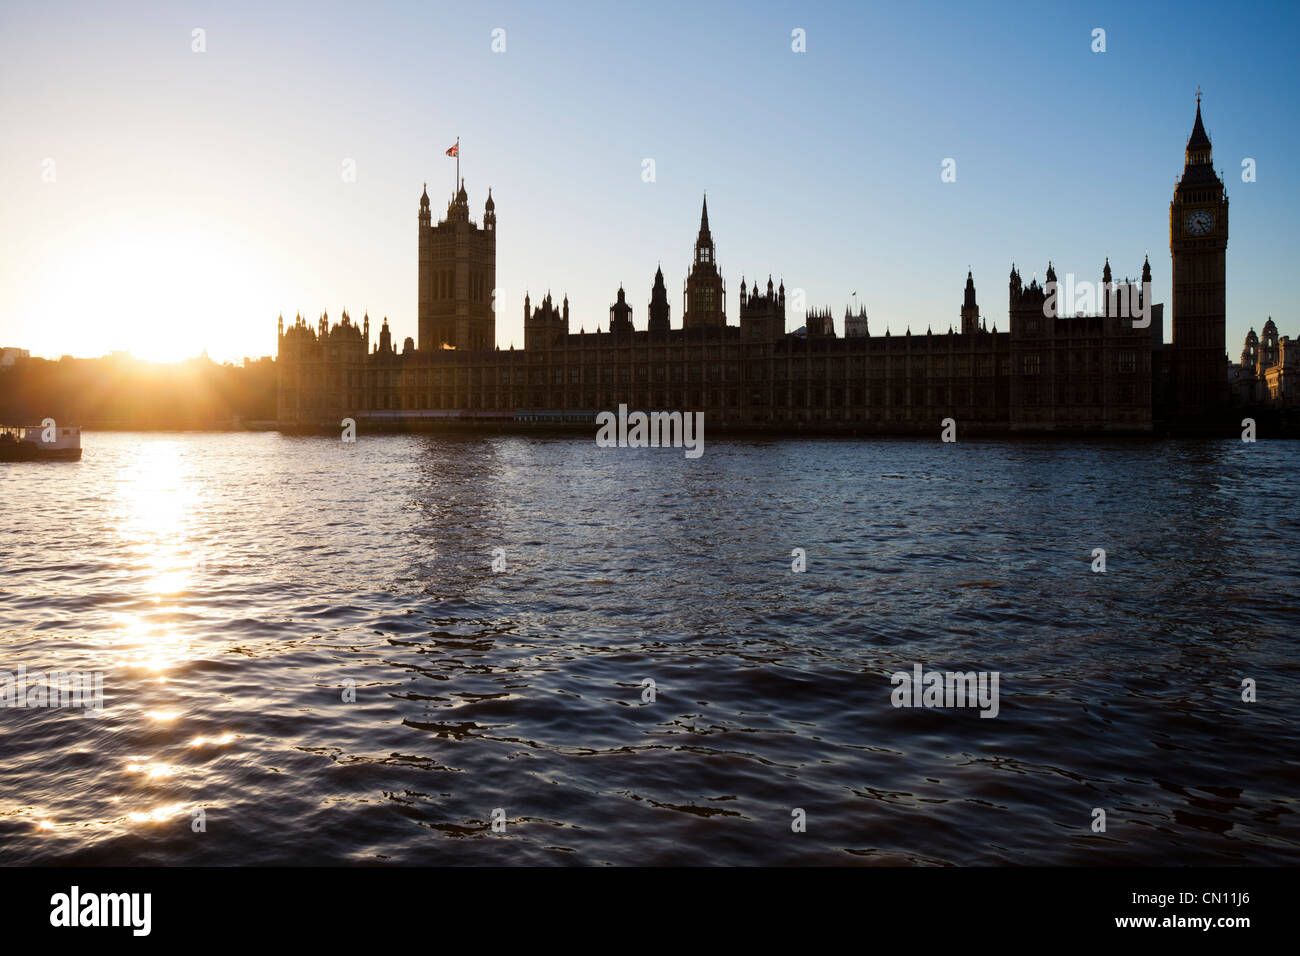 Houses of Parliament, London, UK - Stock Image